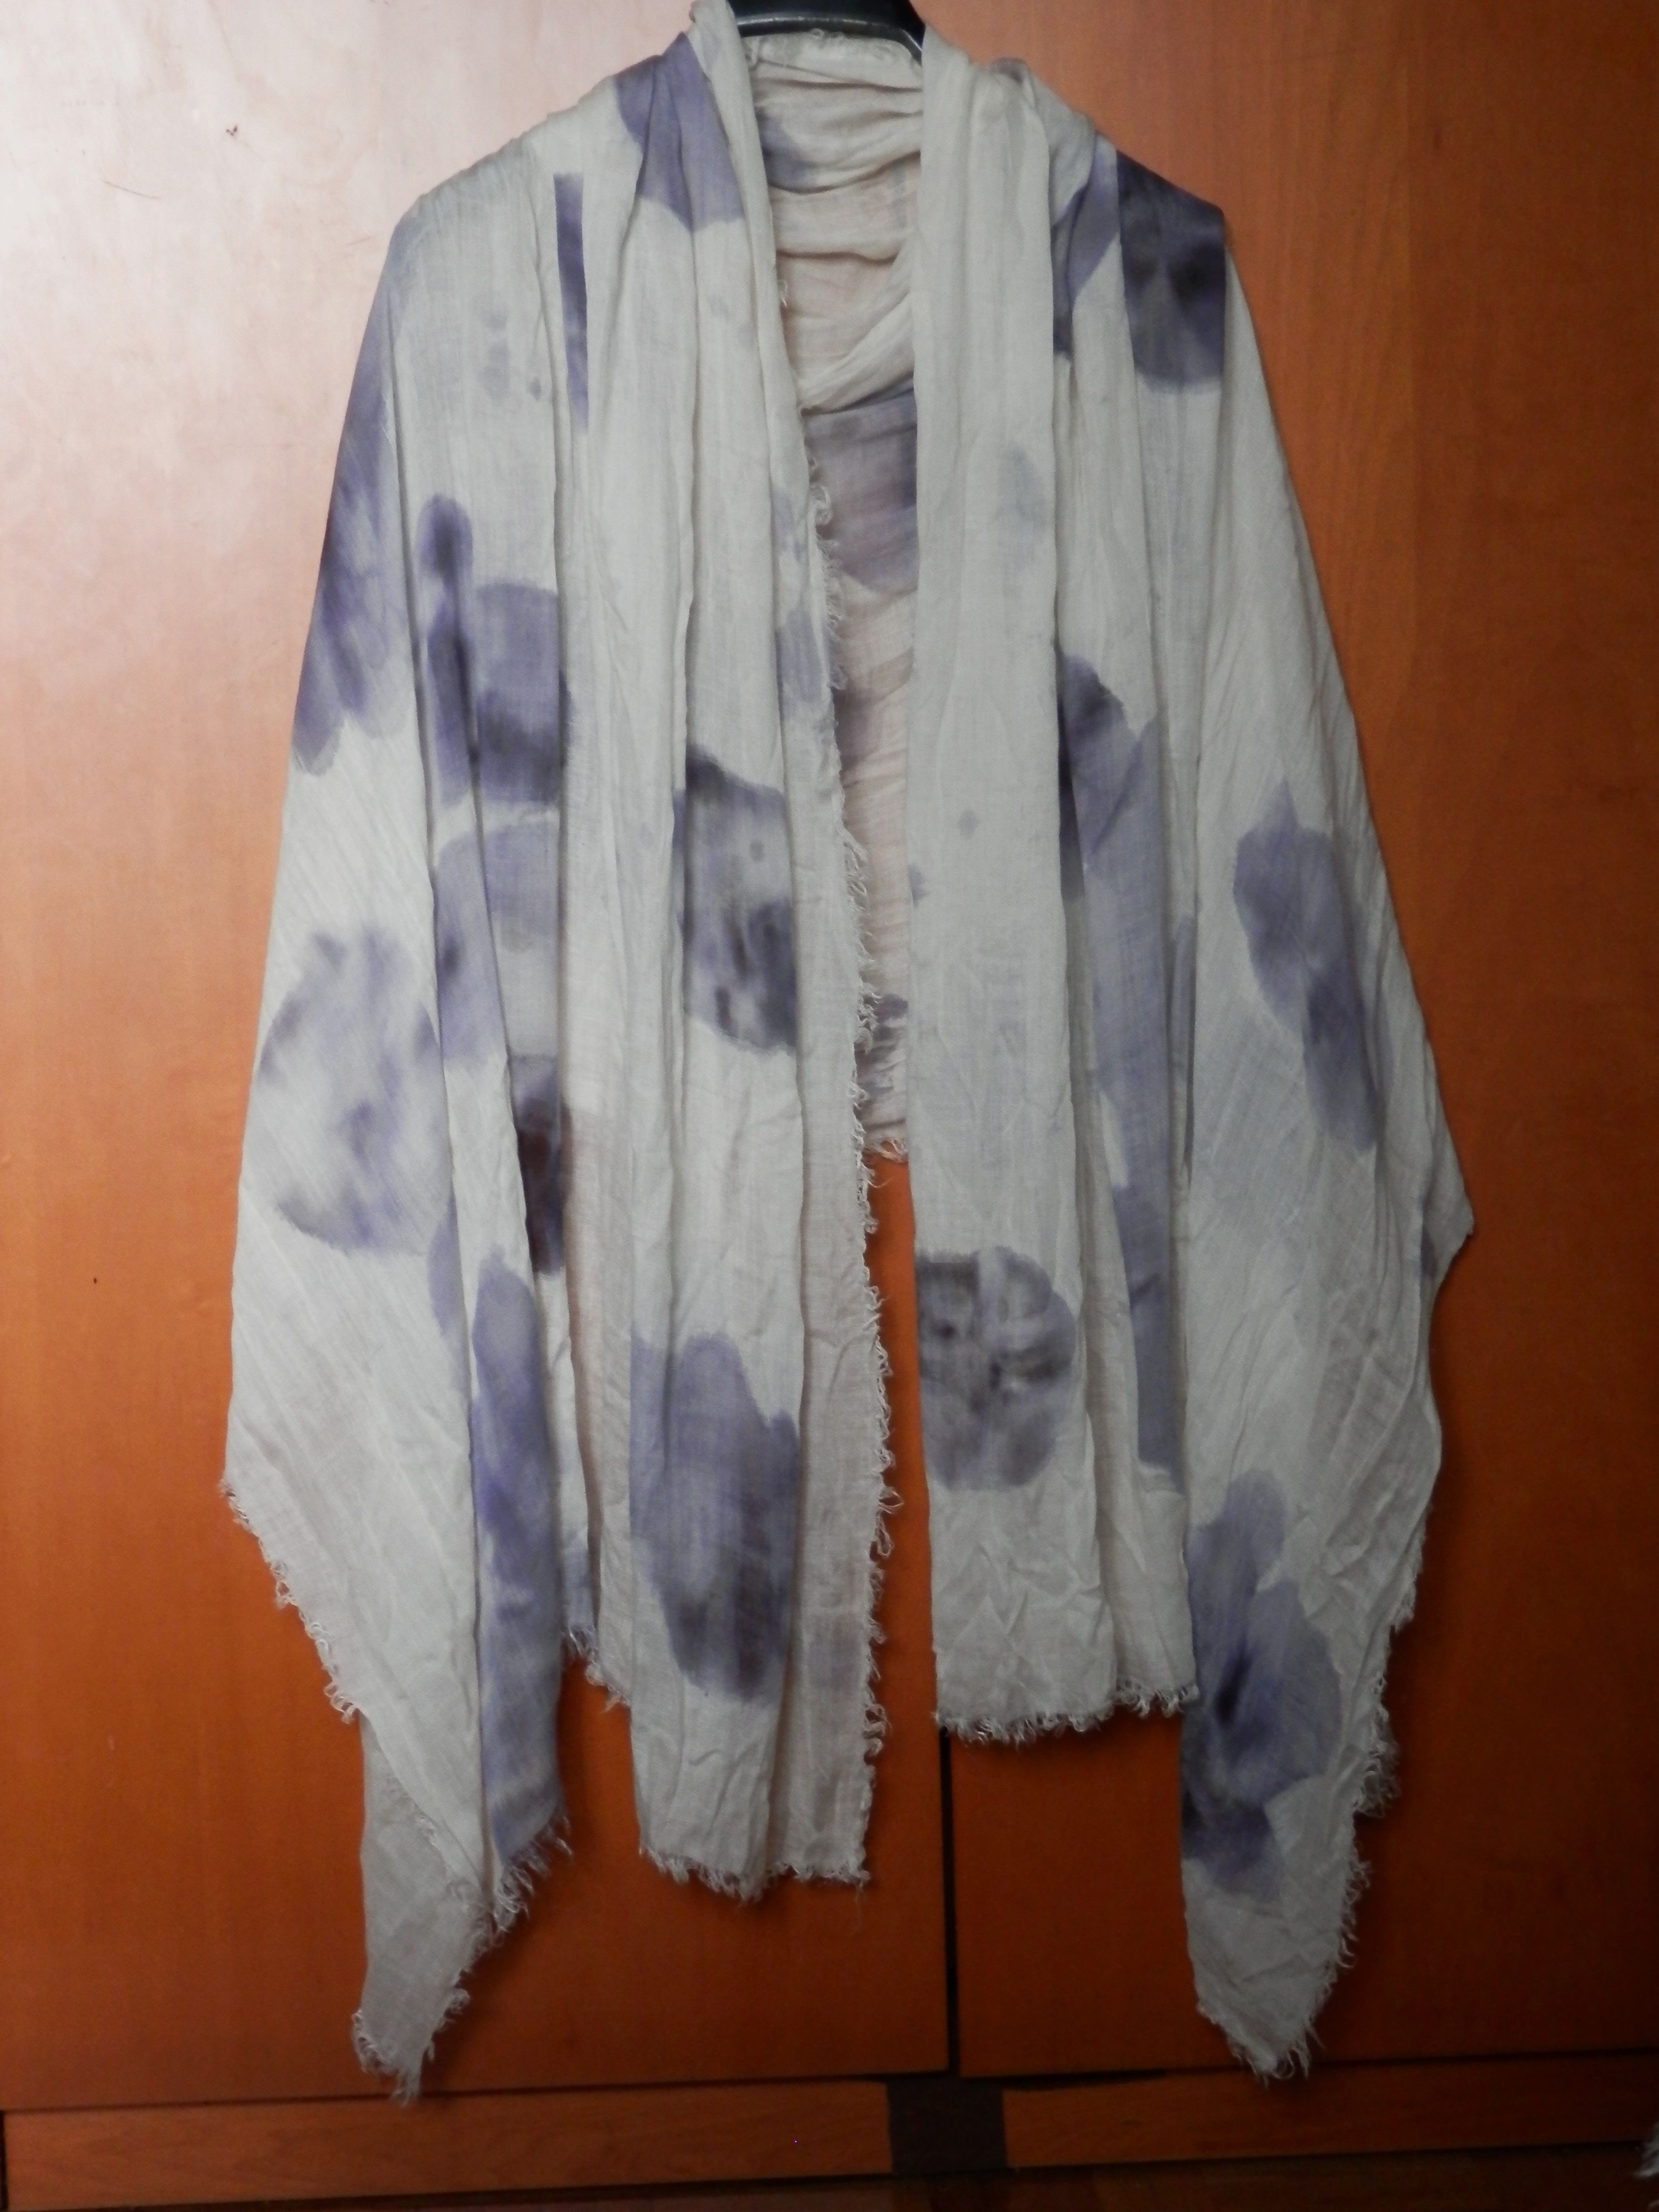 Sharpie and alcohol scarf